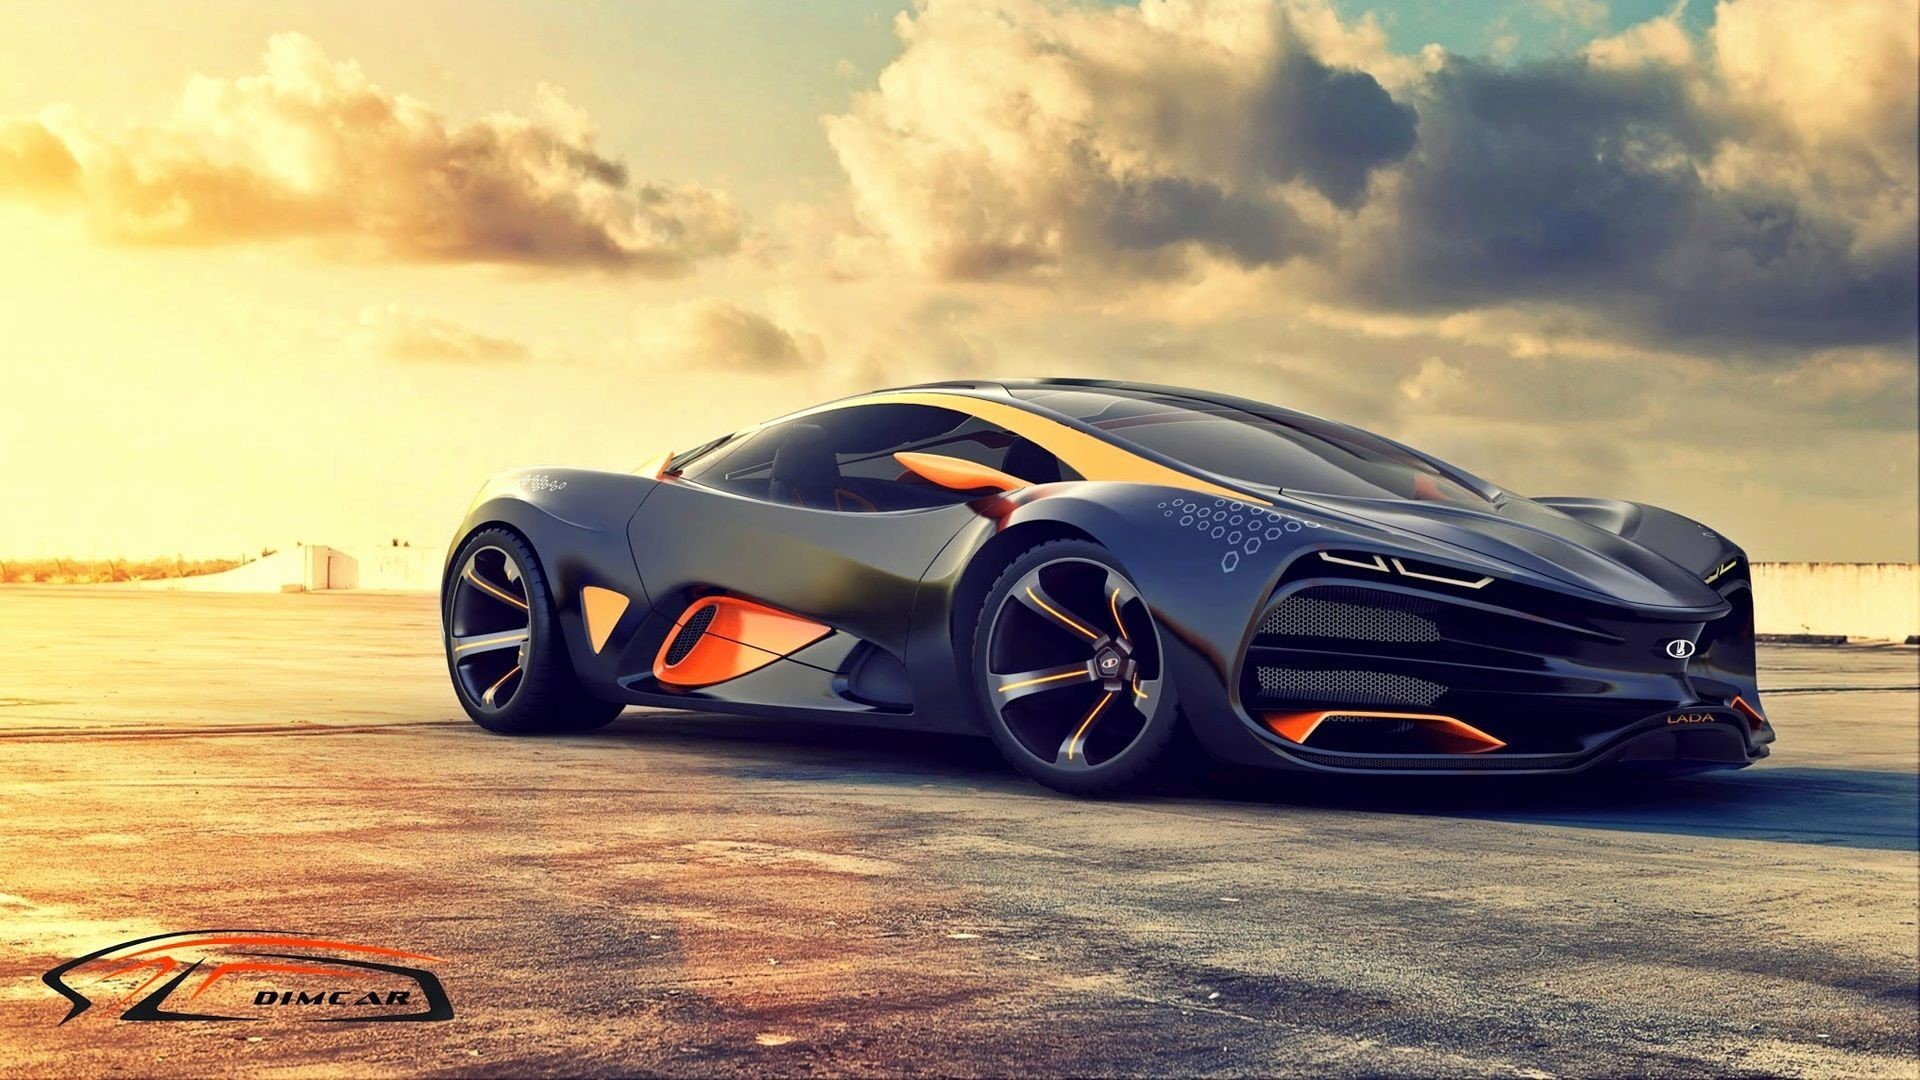 Awesome Cars HTC Wallpapers